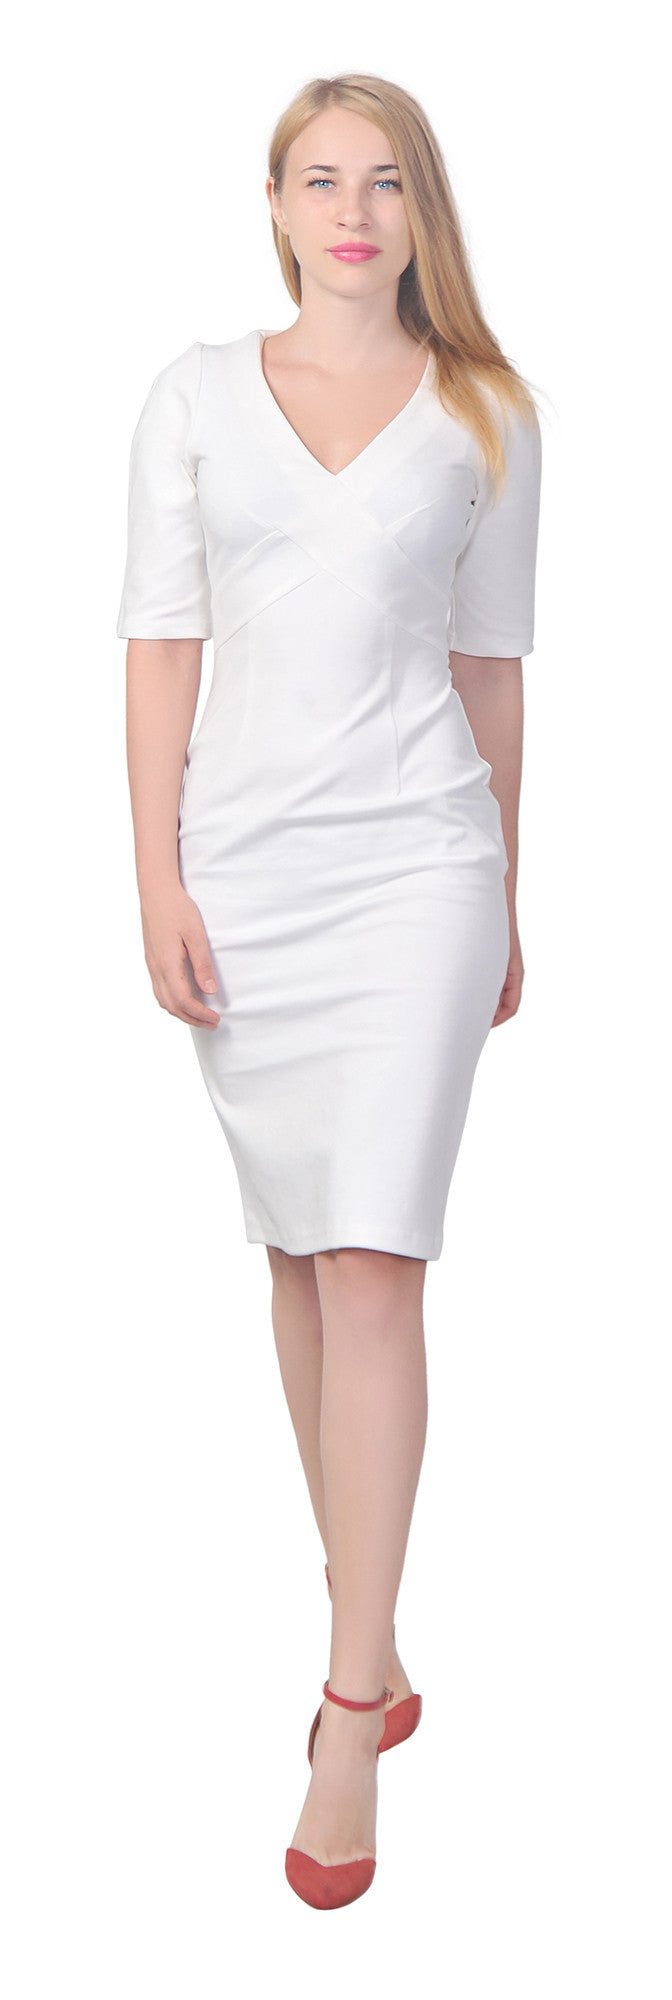 Women's Elegant V Neck Mid sleeve Sheath Pencil Knee length Dress